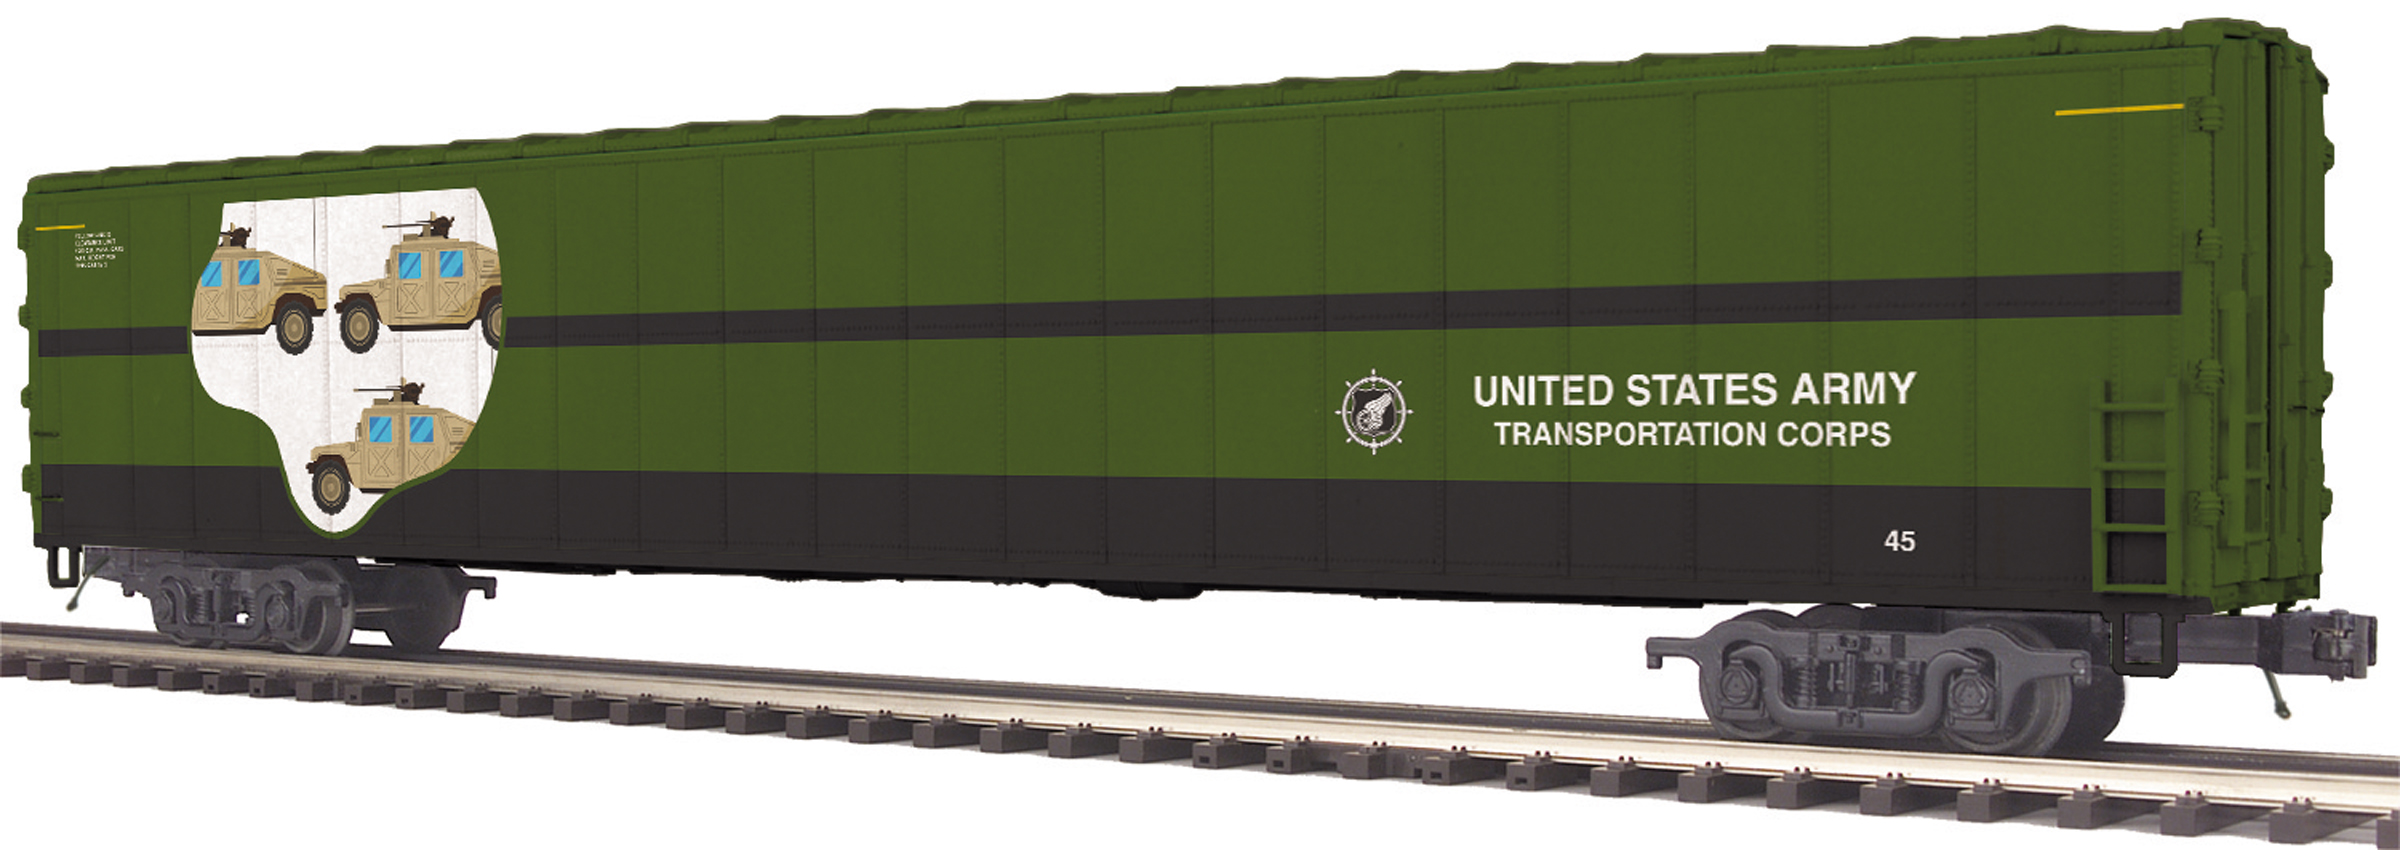 MTH 2095308 O 75' AutoTrain Auto Carrier US Army #45